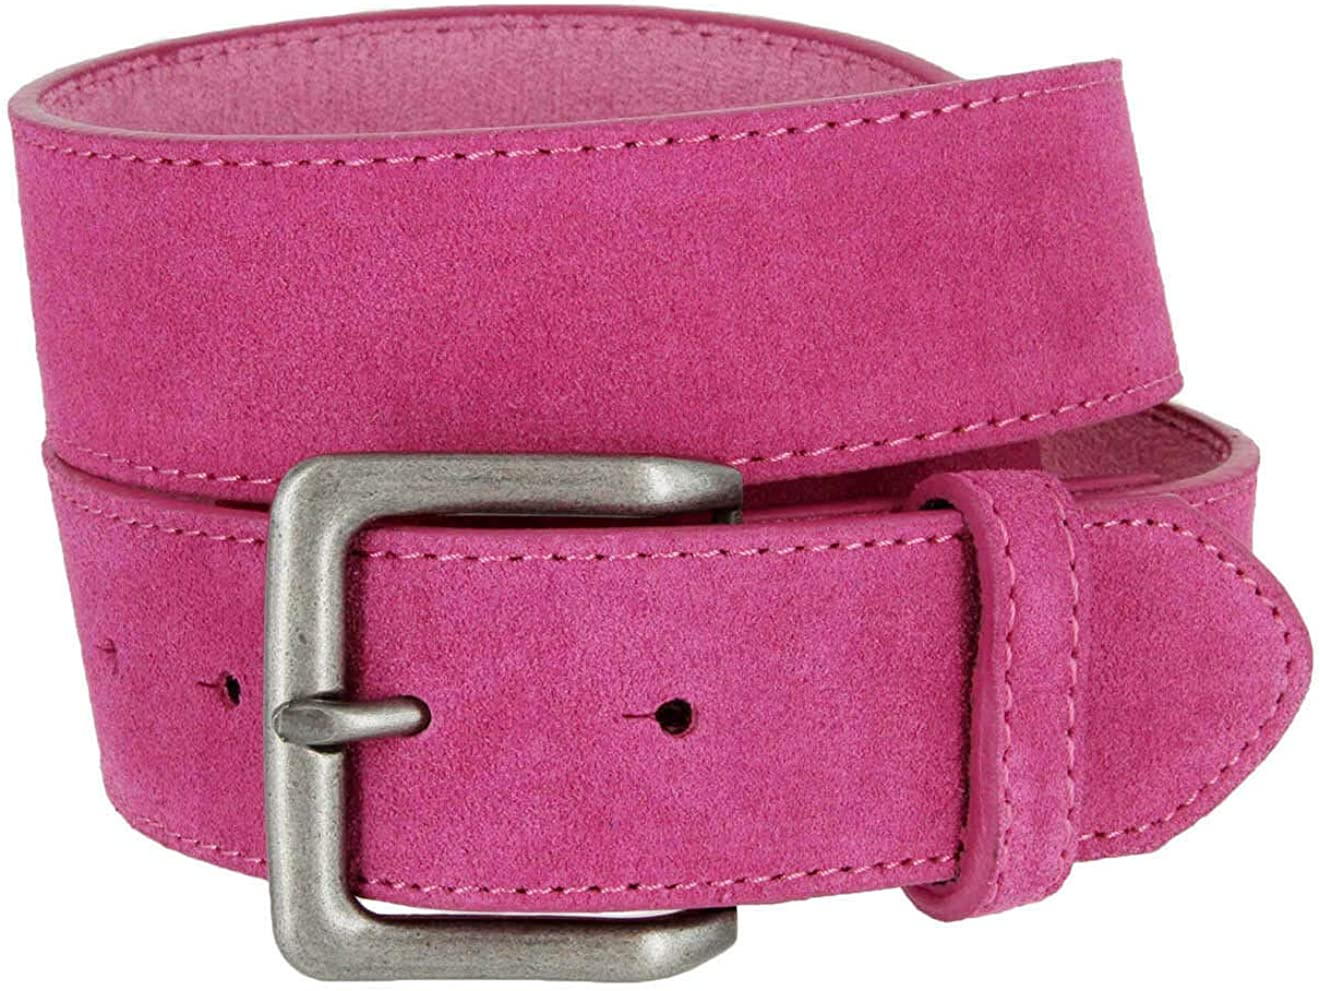 """Square Buckle Casual Jean Suede Leather Belt 1 1/2"""" Wide"""